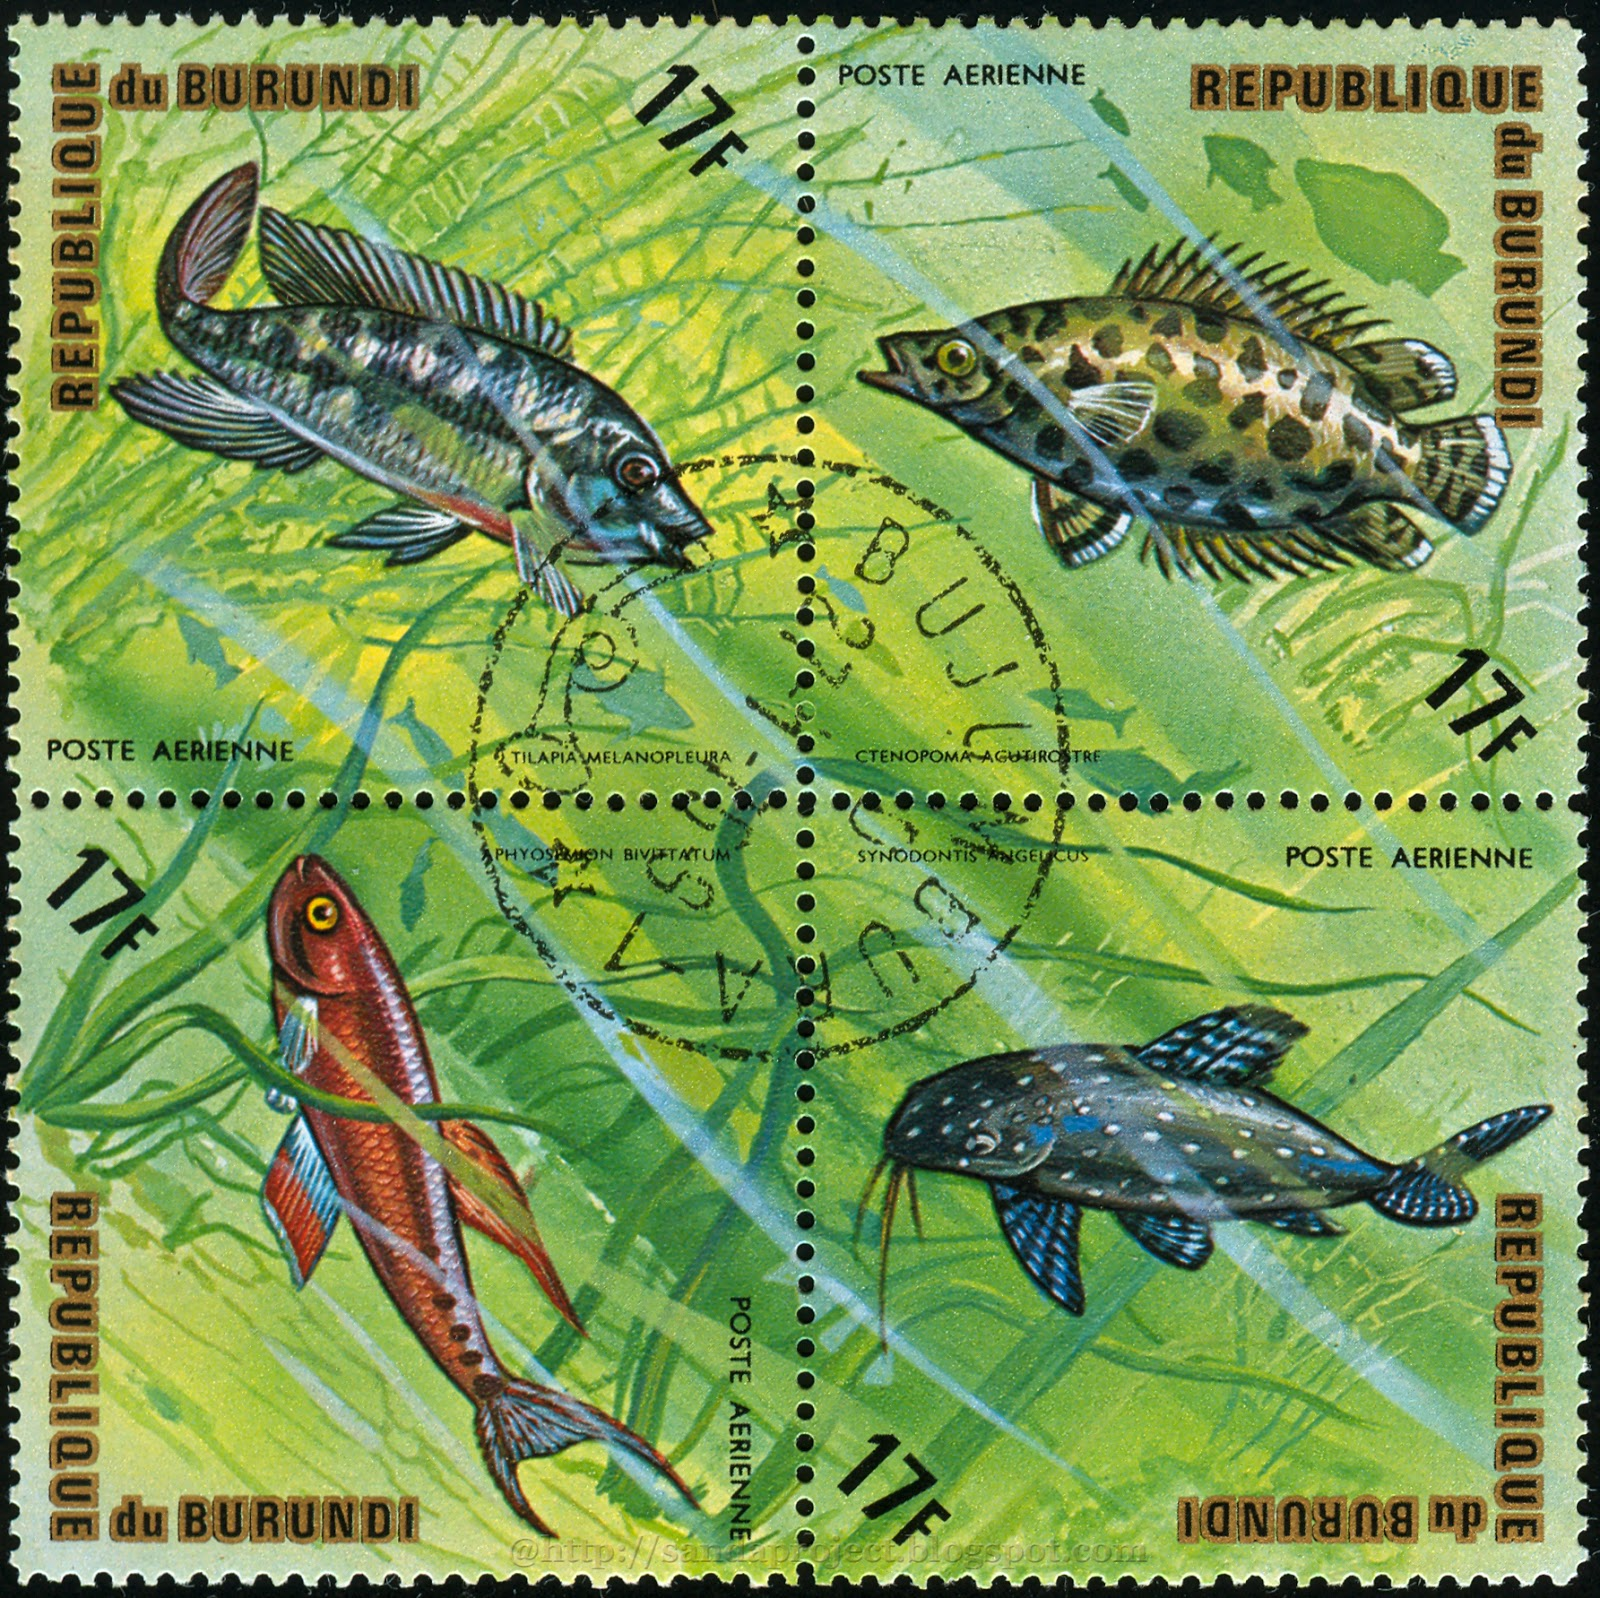 Sanda Project Stamps Collection: Set Of Postage Stamps